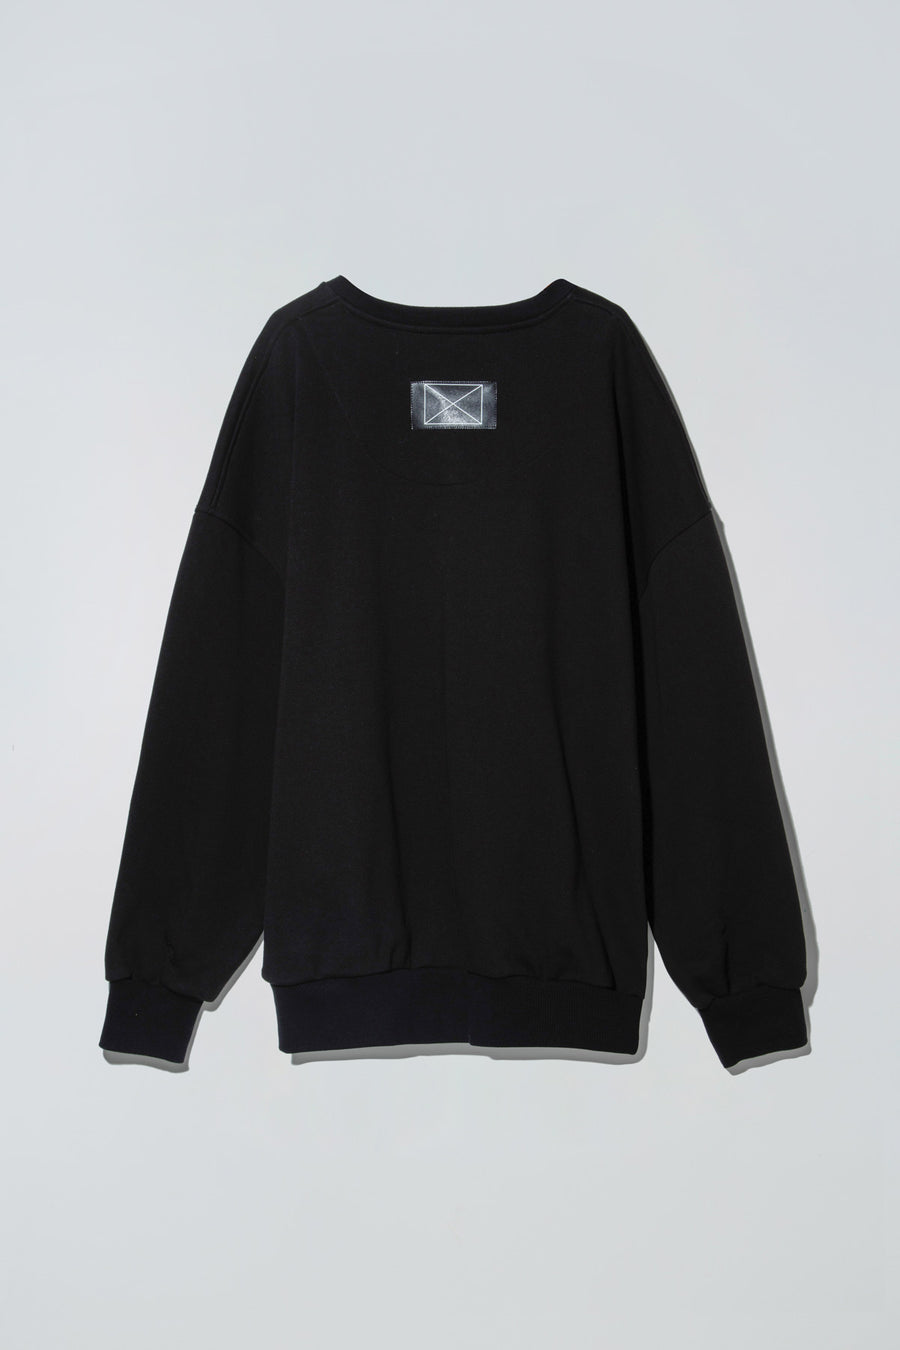 Möbius Loop Sweatshirt Black